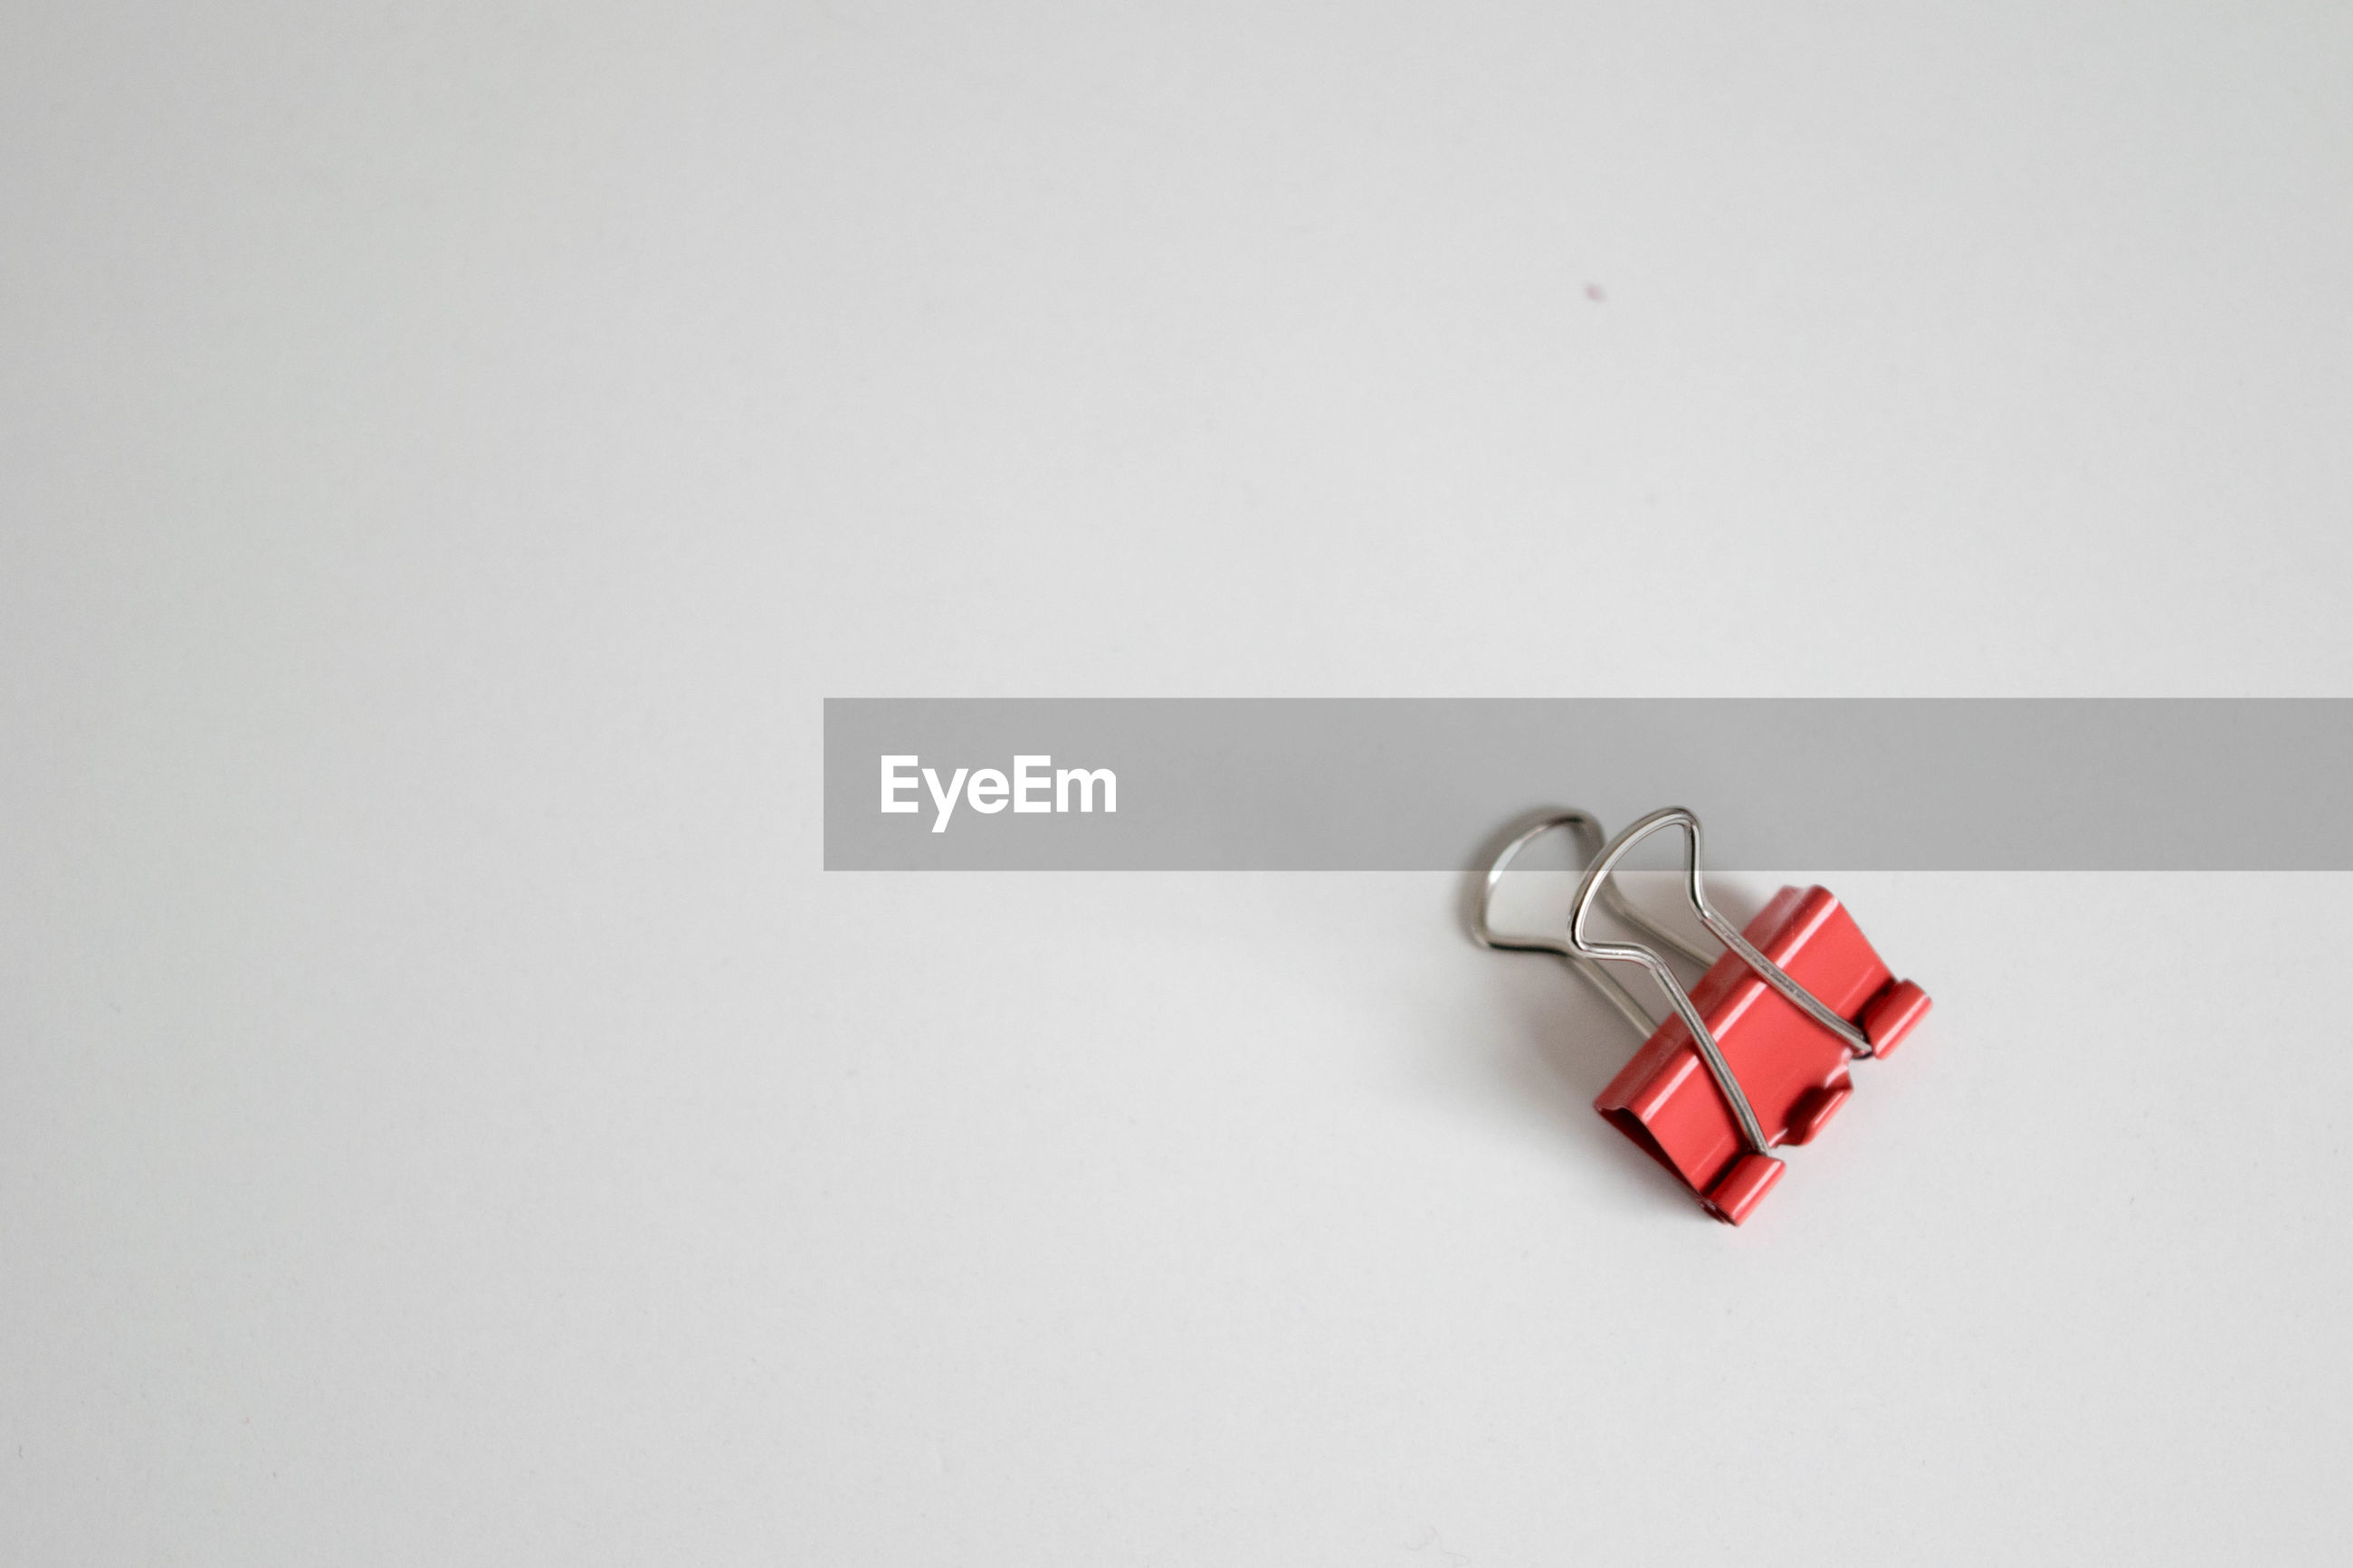 Close-up of red metal clip over white background